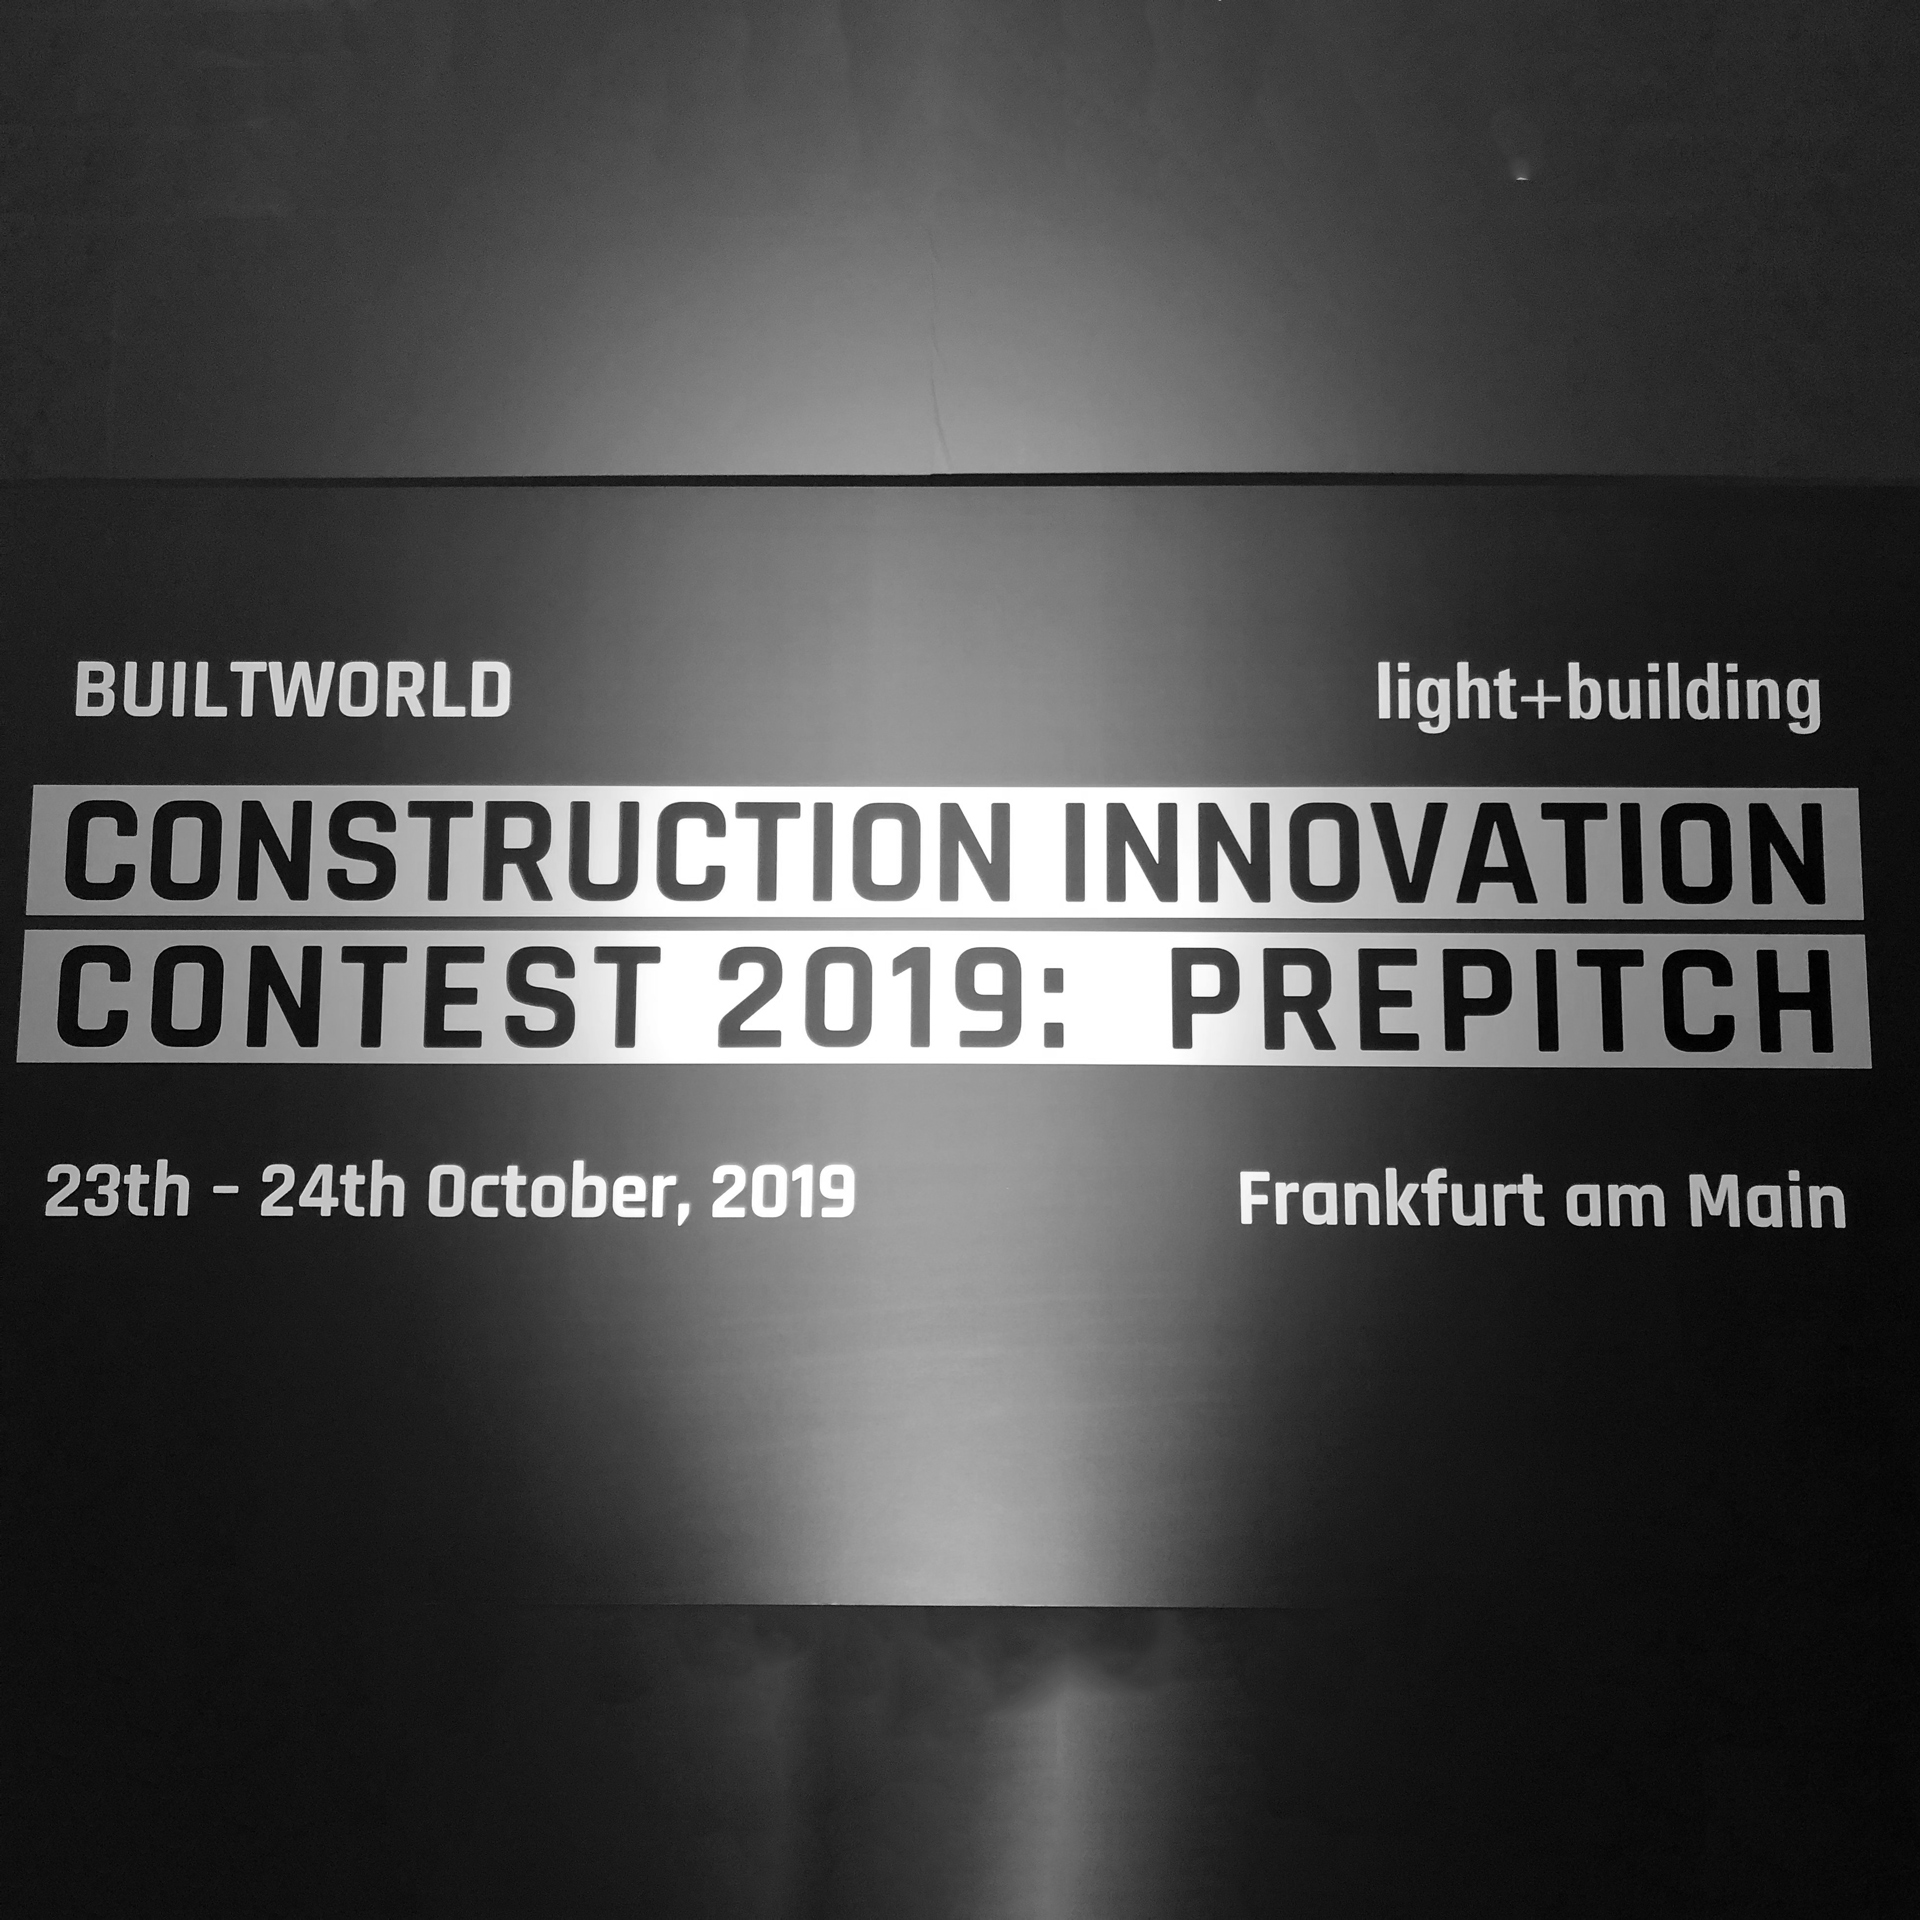 Construction Innovation Contest